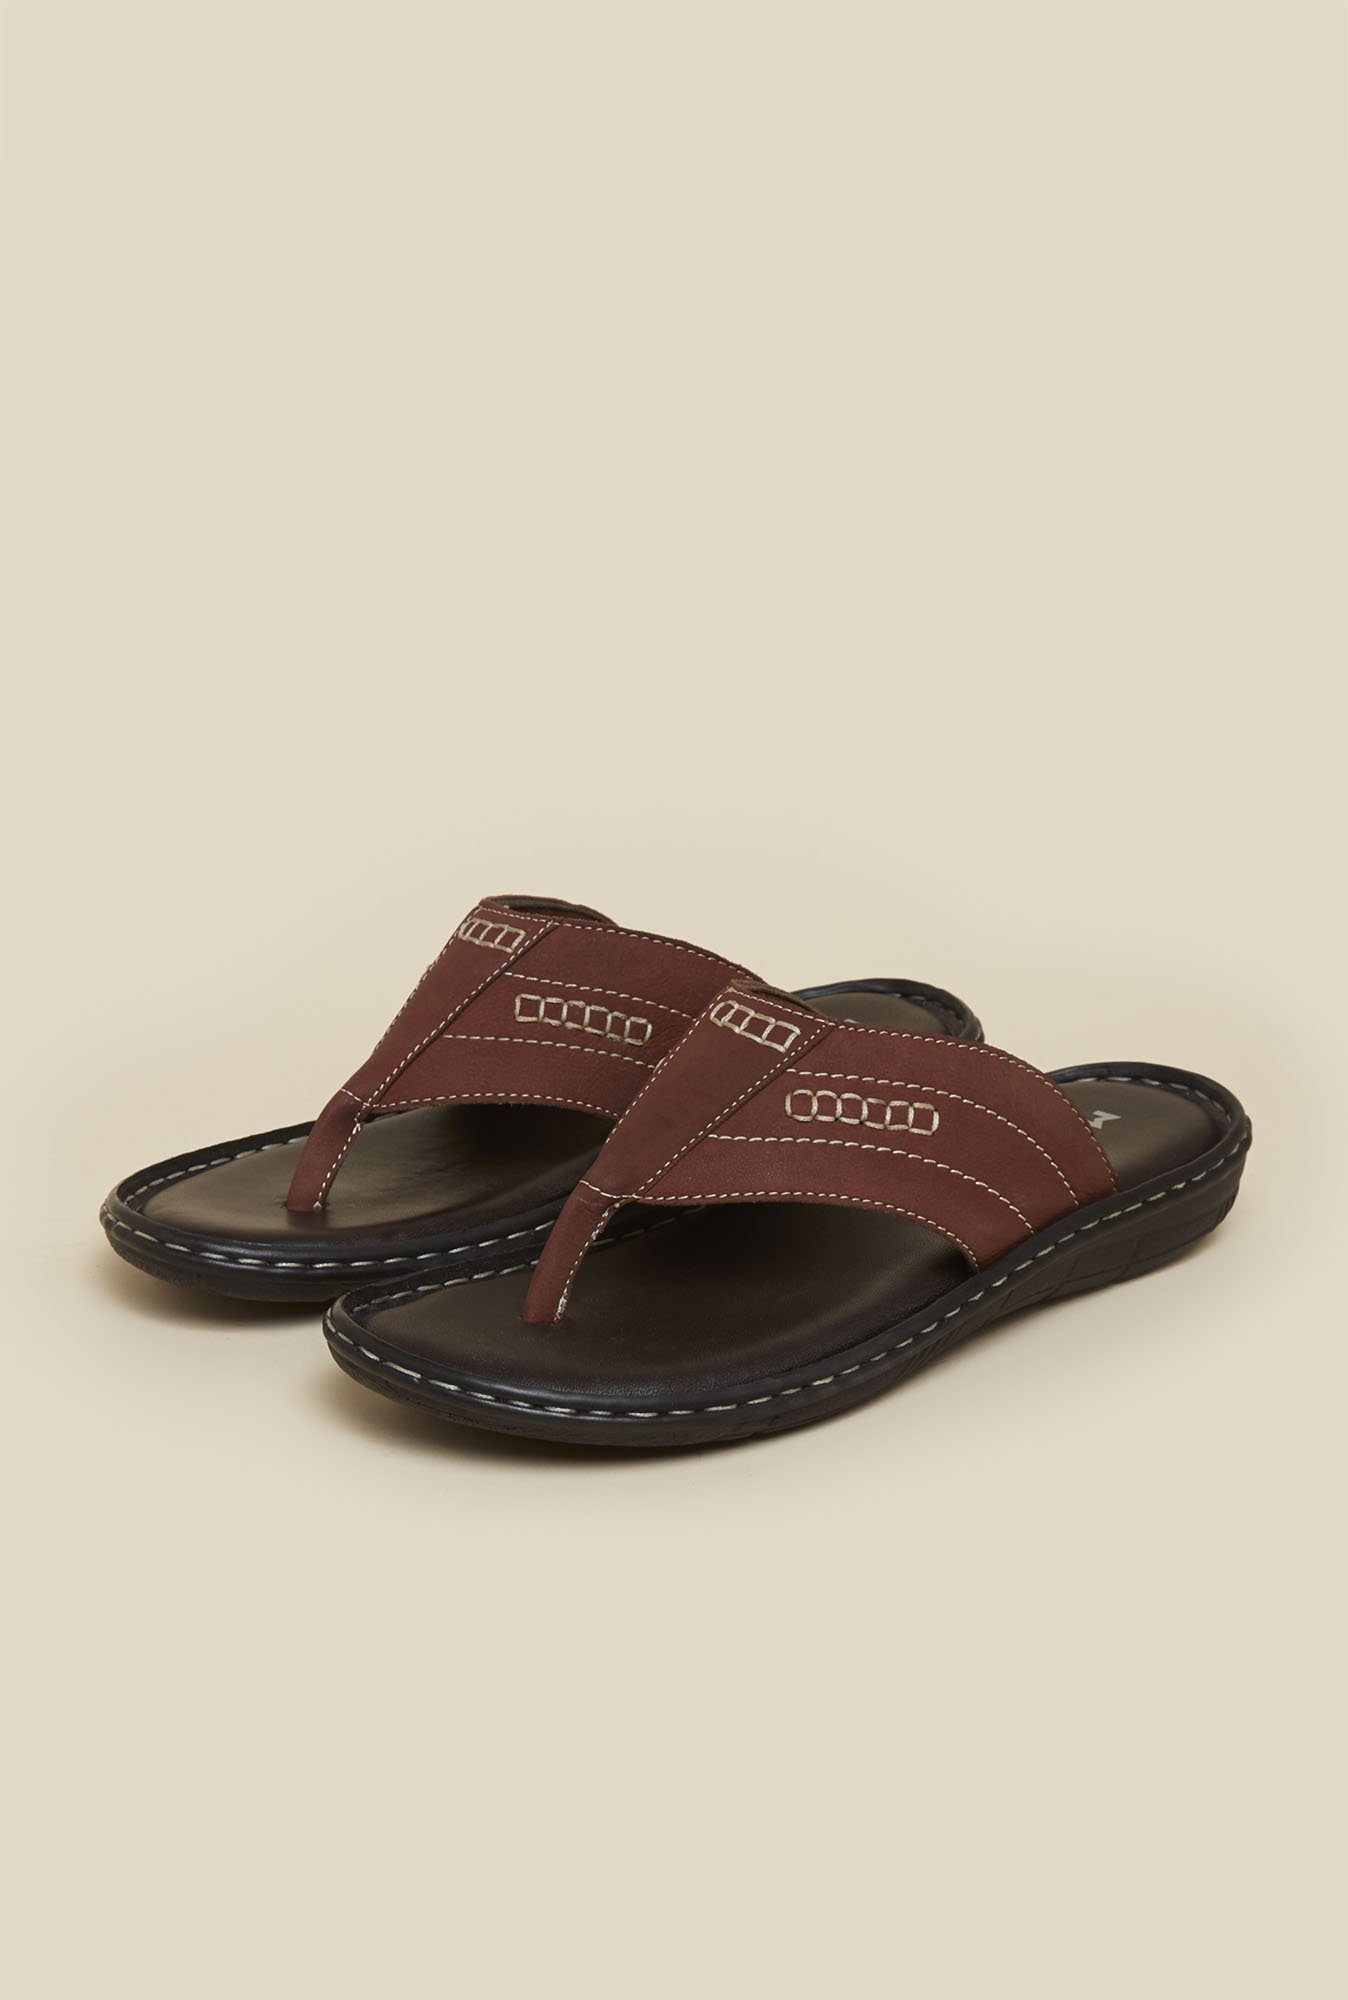 Mochi Brown Leather Thong Sandals